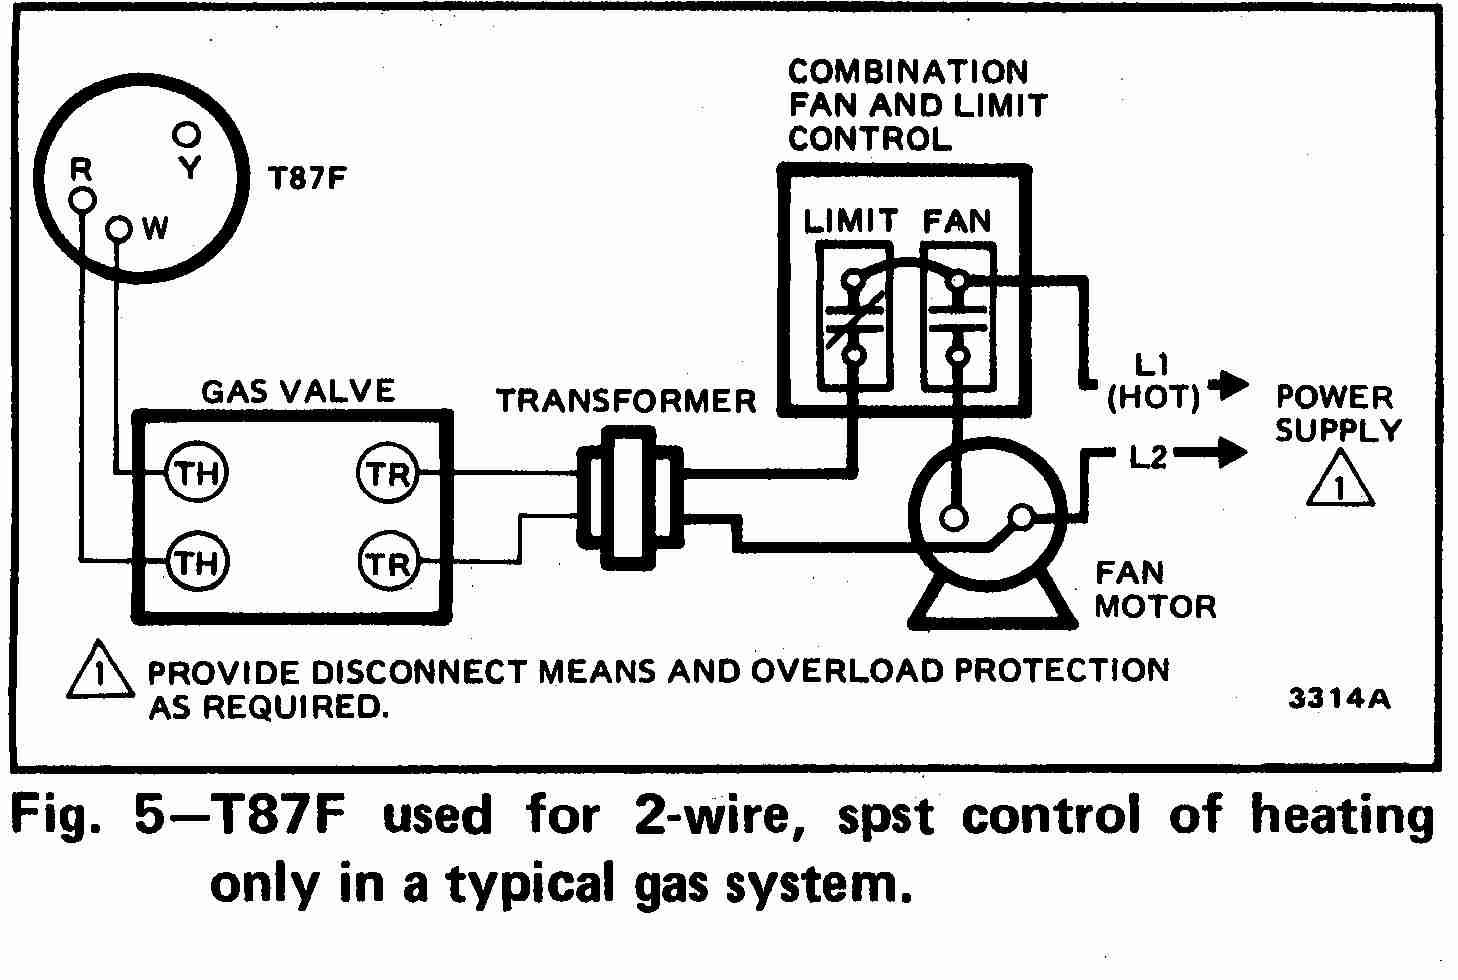 hight resolution of room thermostat wiring diagrams for hvac systemshoneywell t87f thermostat wiring diagram for 2 wire spst